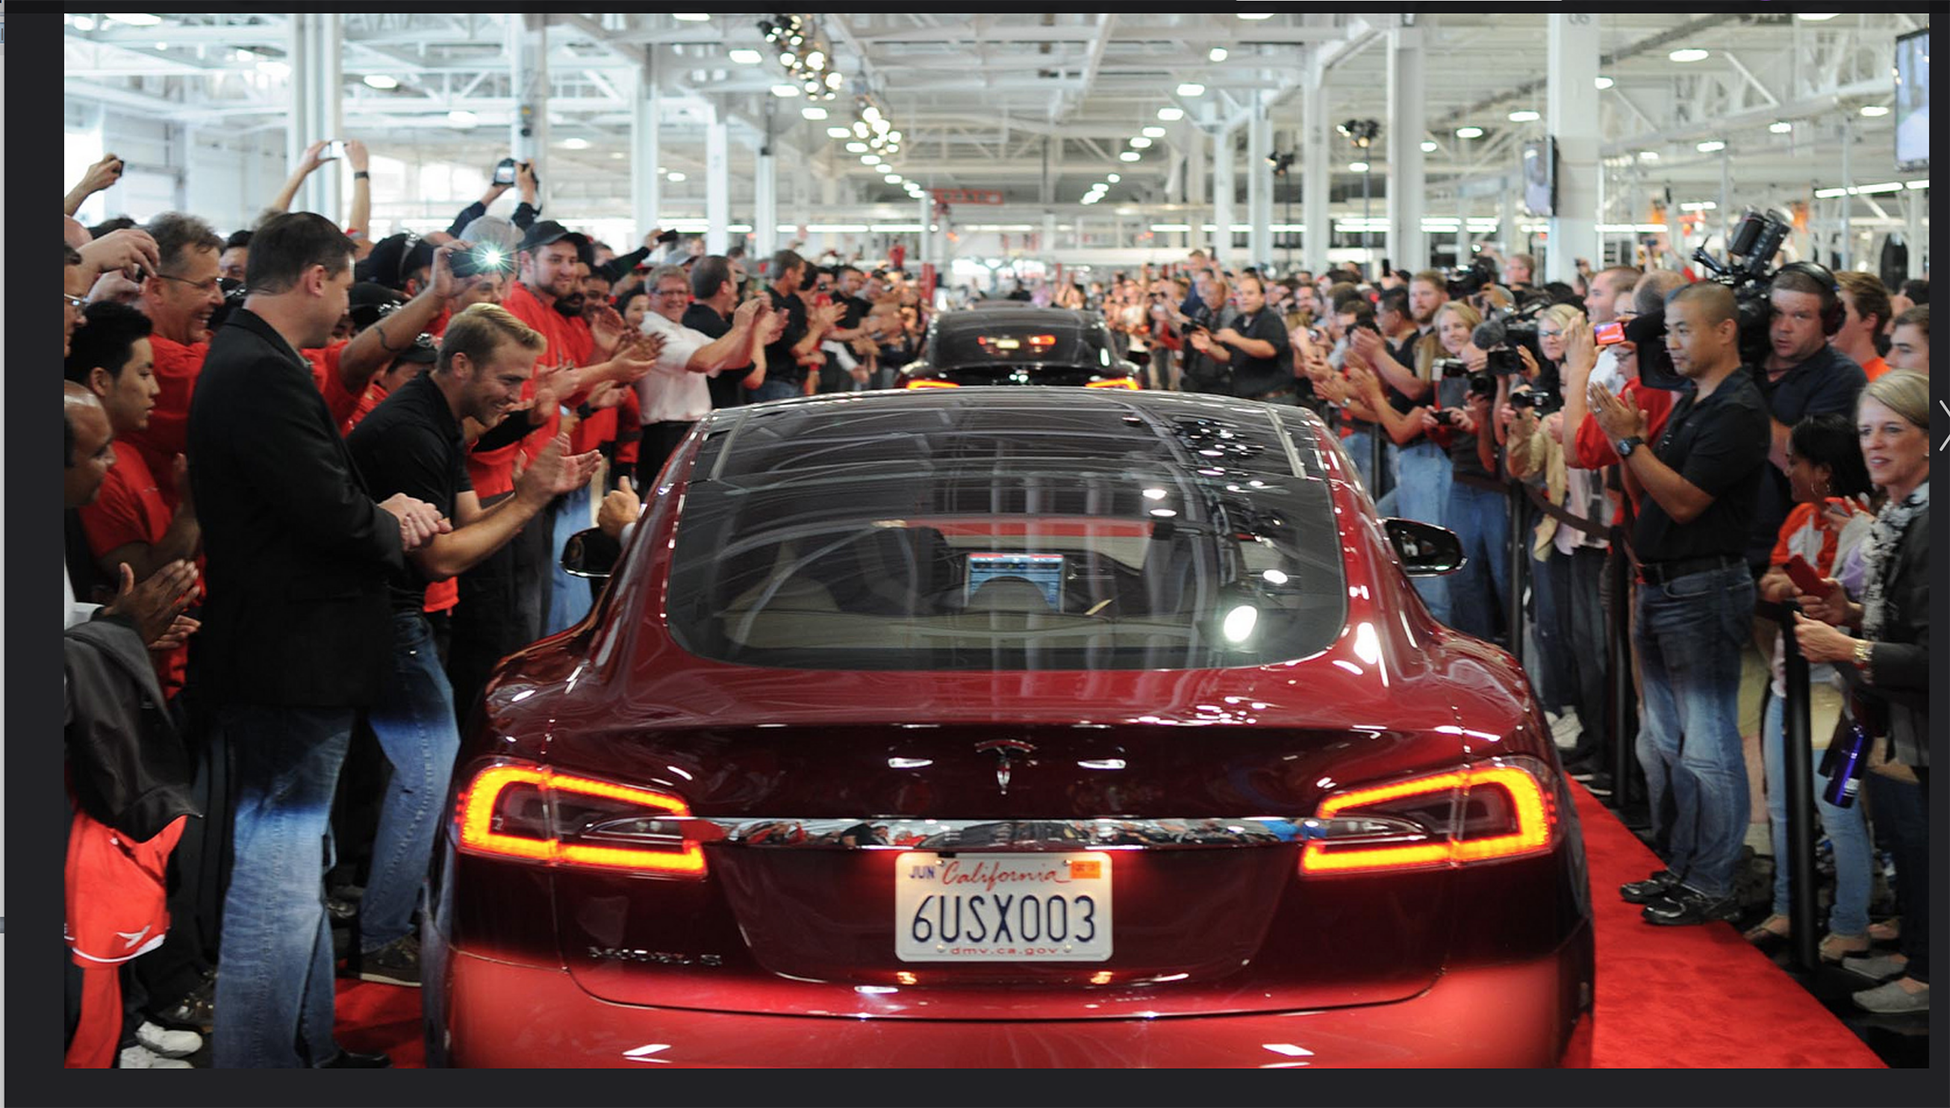 A photograph shows a large crowd cheering on a line of Tesla cars driving down a red carpet path.